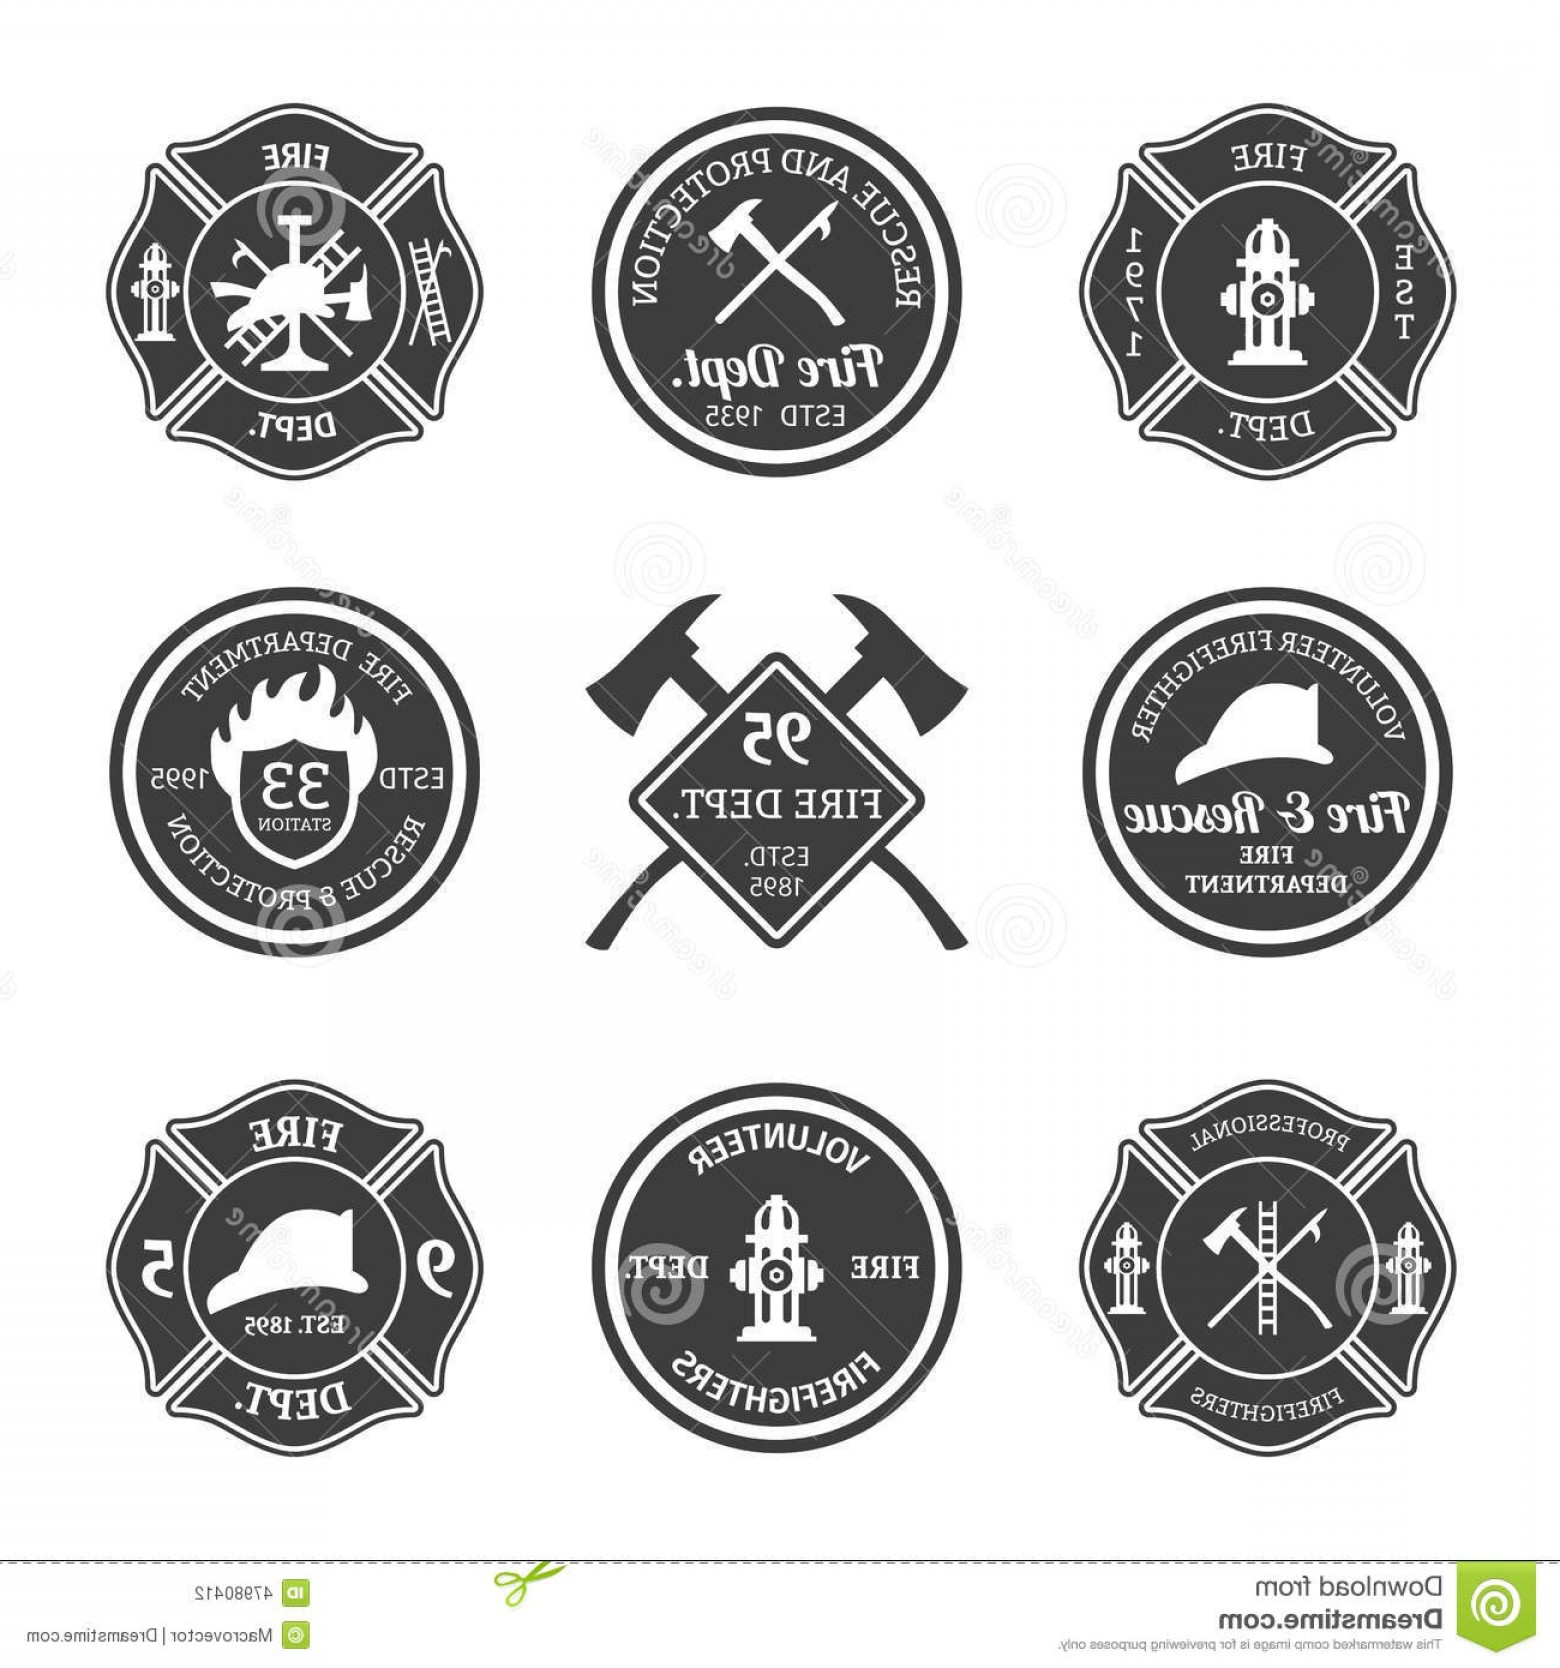 Fire Fighter Logo Vector: Stock Illustration Fire Department Emblems Black Professional Firefighter Equipment Set Isolated Vector Illustration Image